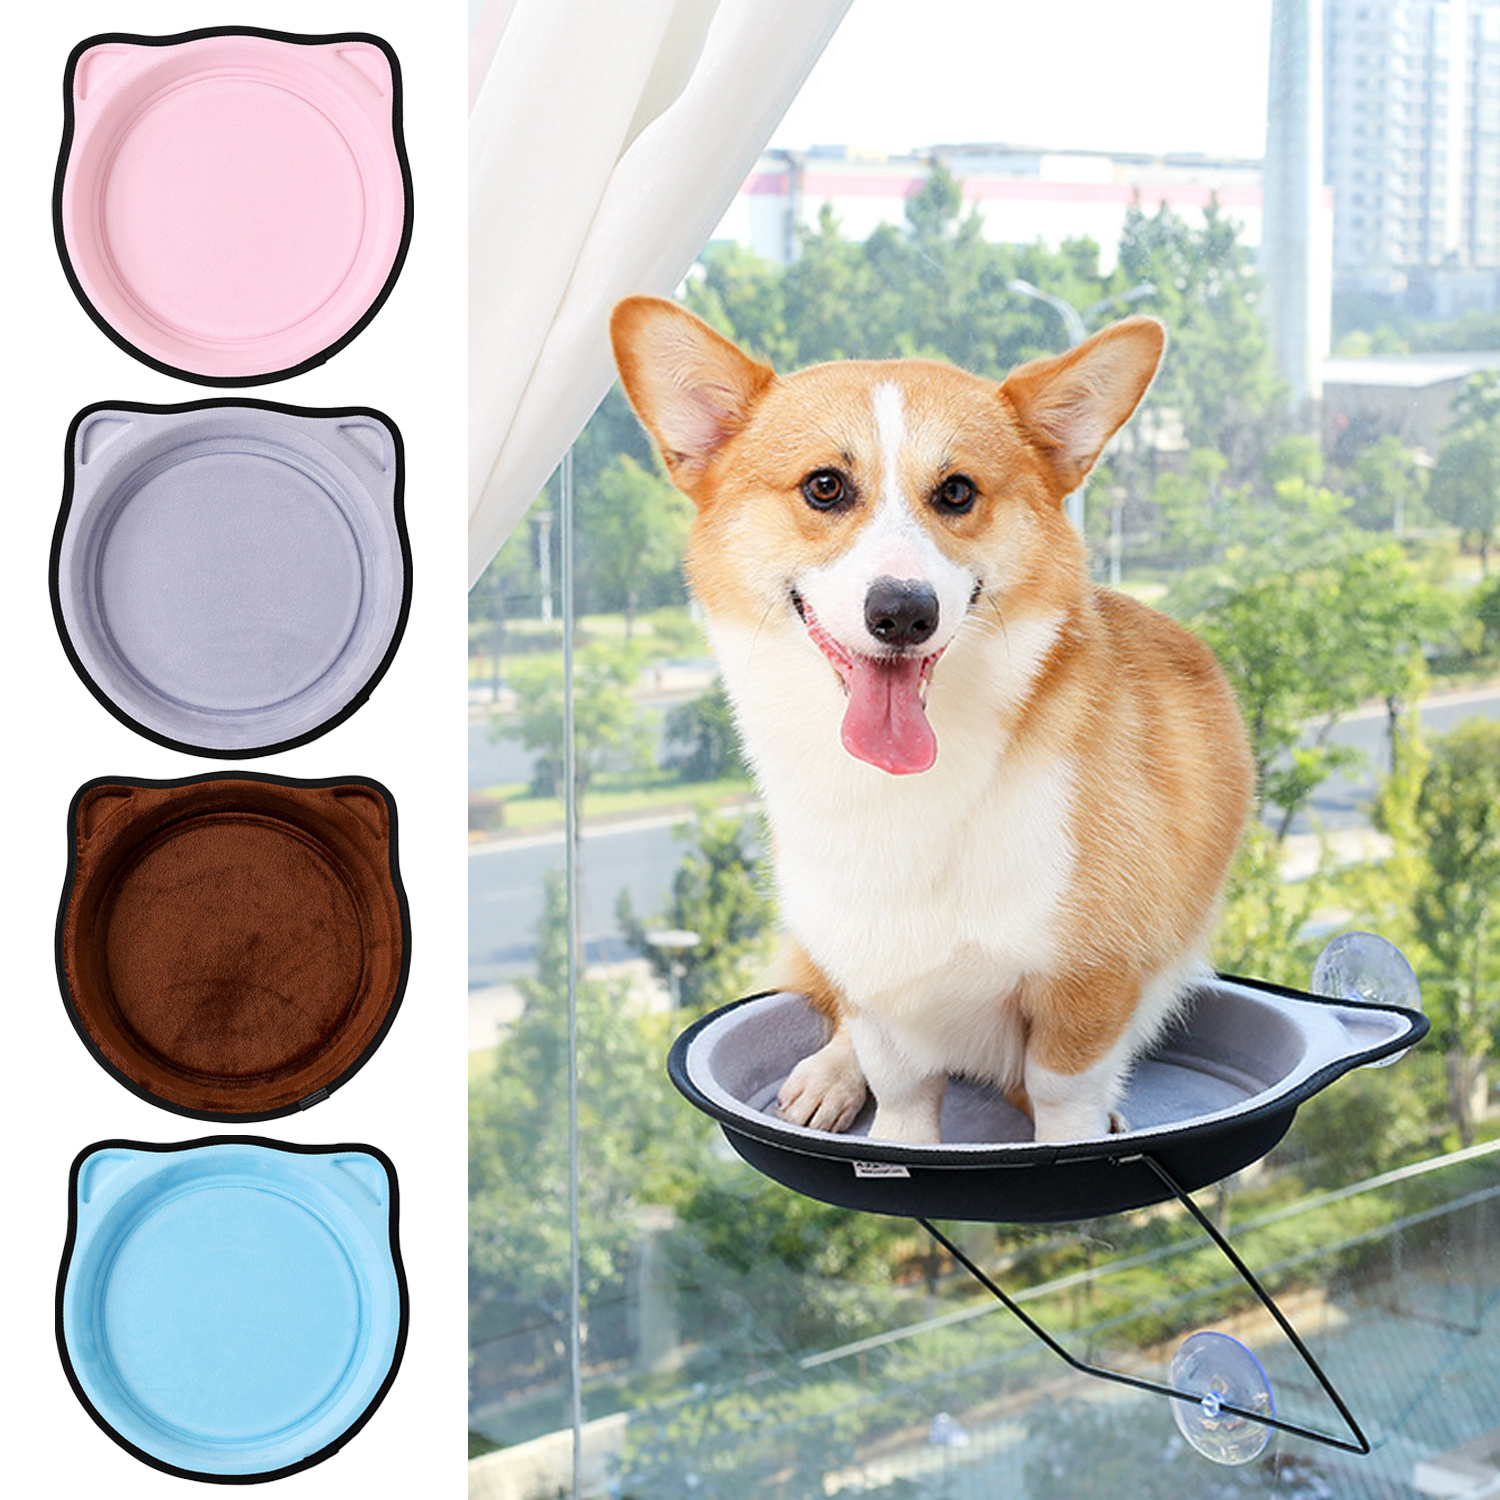 Admirable Us 15 35 25 Off Behogar Mini Cat Window Perch Window Mounted Cat Bed Hammock Sunny Seat Kitty Bed Climbing Tower With 4 Suction Cups In Cat Beds Andrewgaddart Wooden Chair Designs For Living Room Andrewgaddartcom